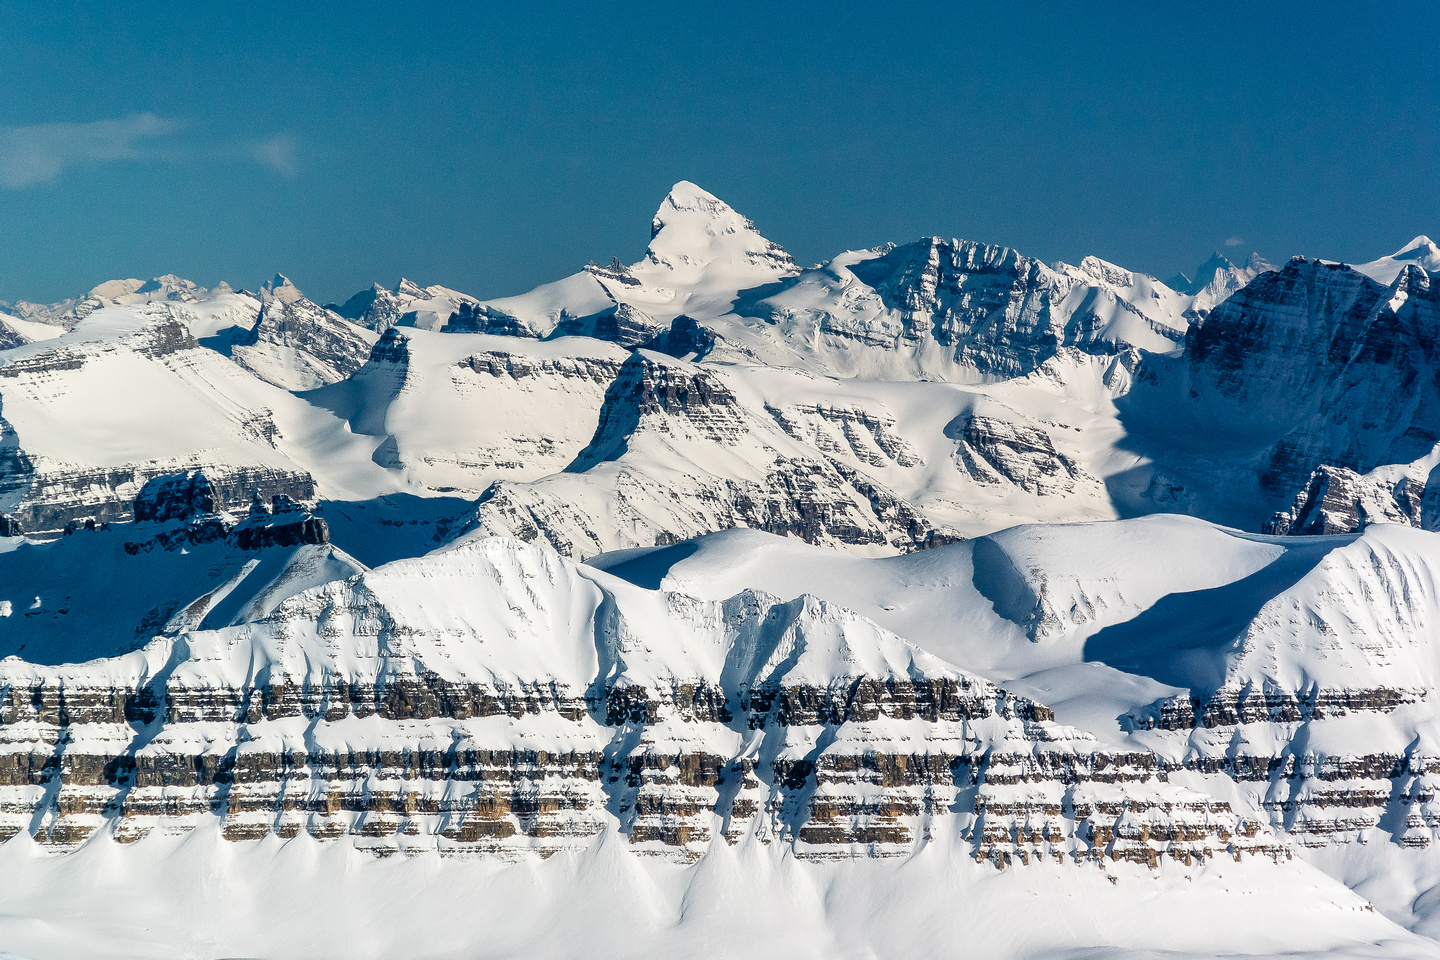 Mount Forbes is the highest peak in Banff National Park at 11,851ft.